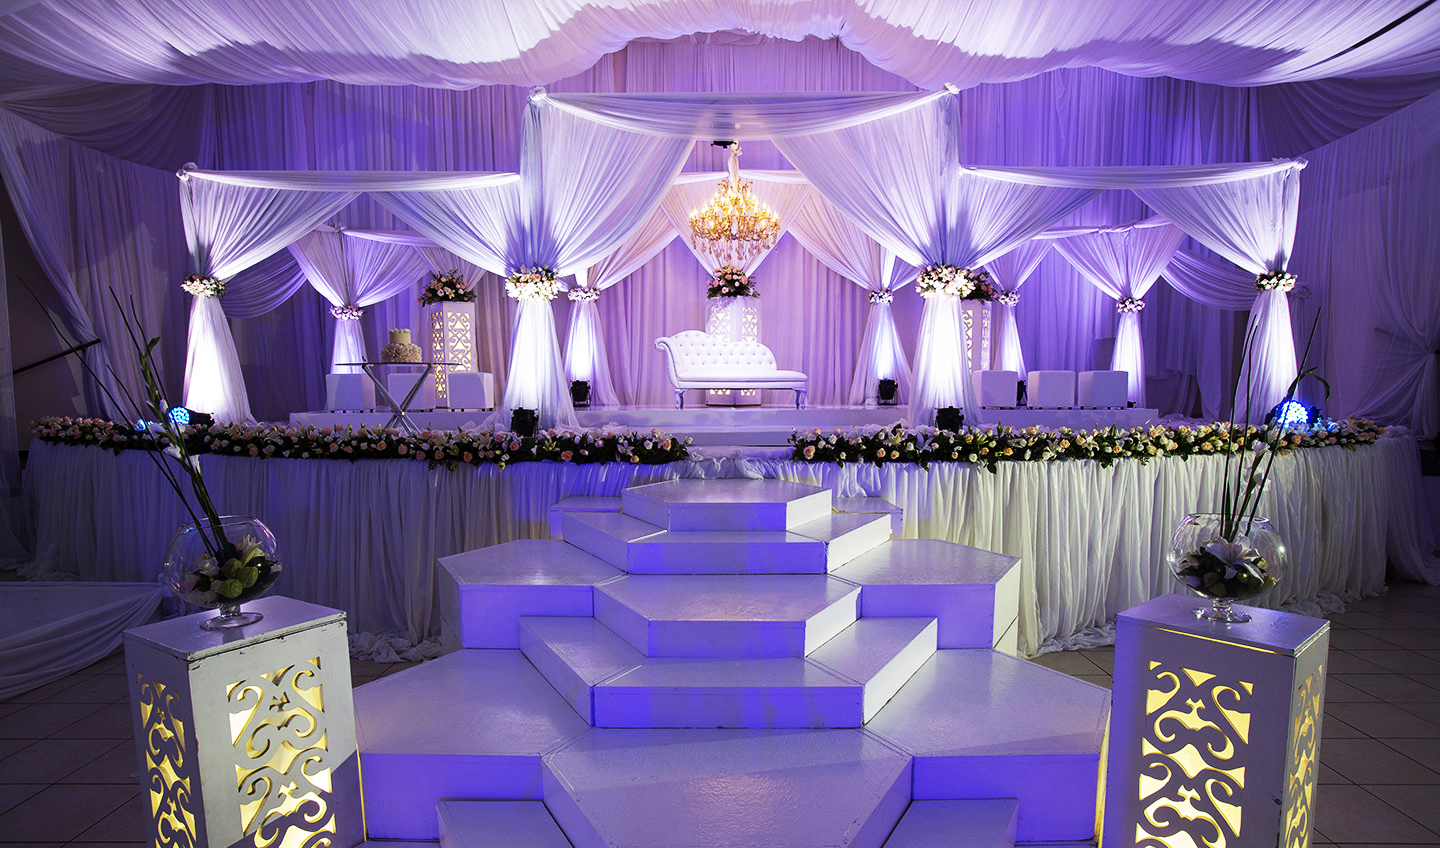 Designer weddings koogan pillay wedding decor durban for Wedding event decorators